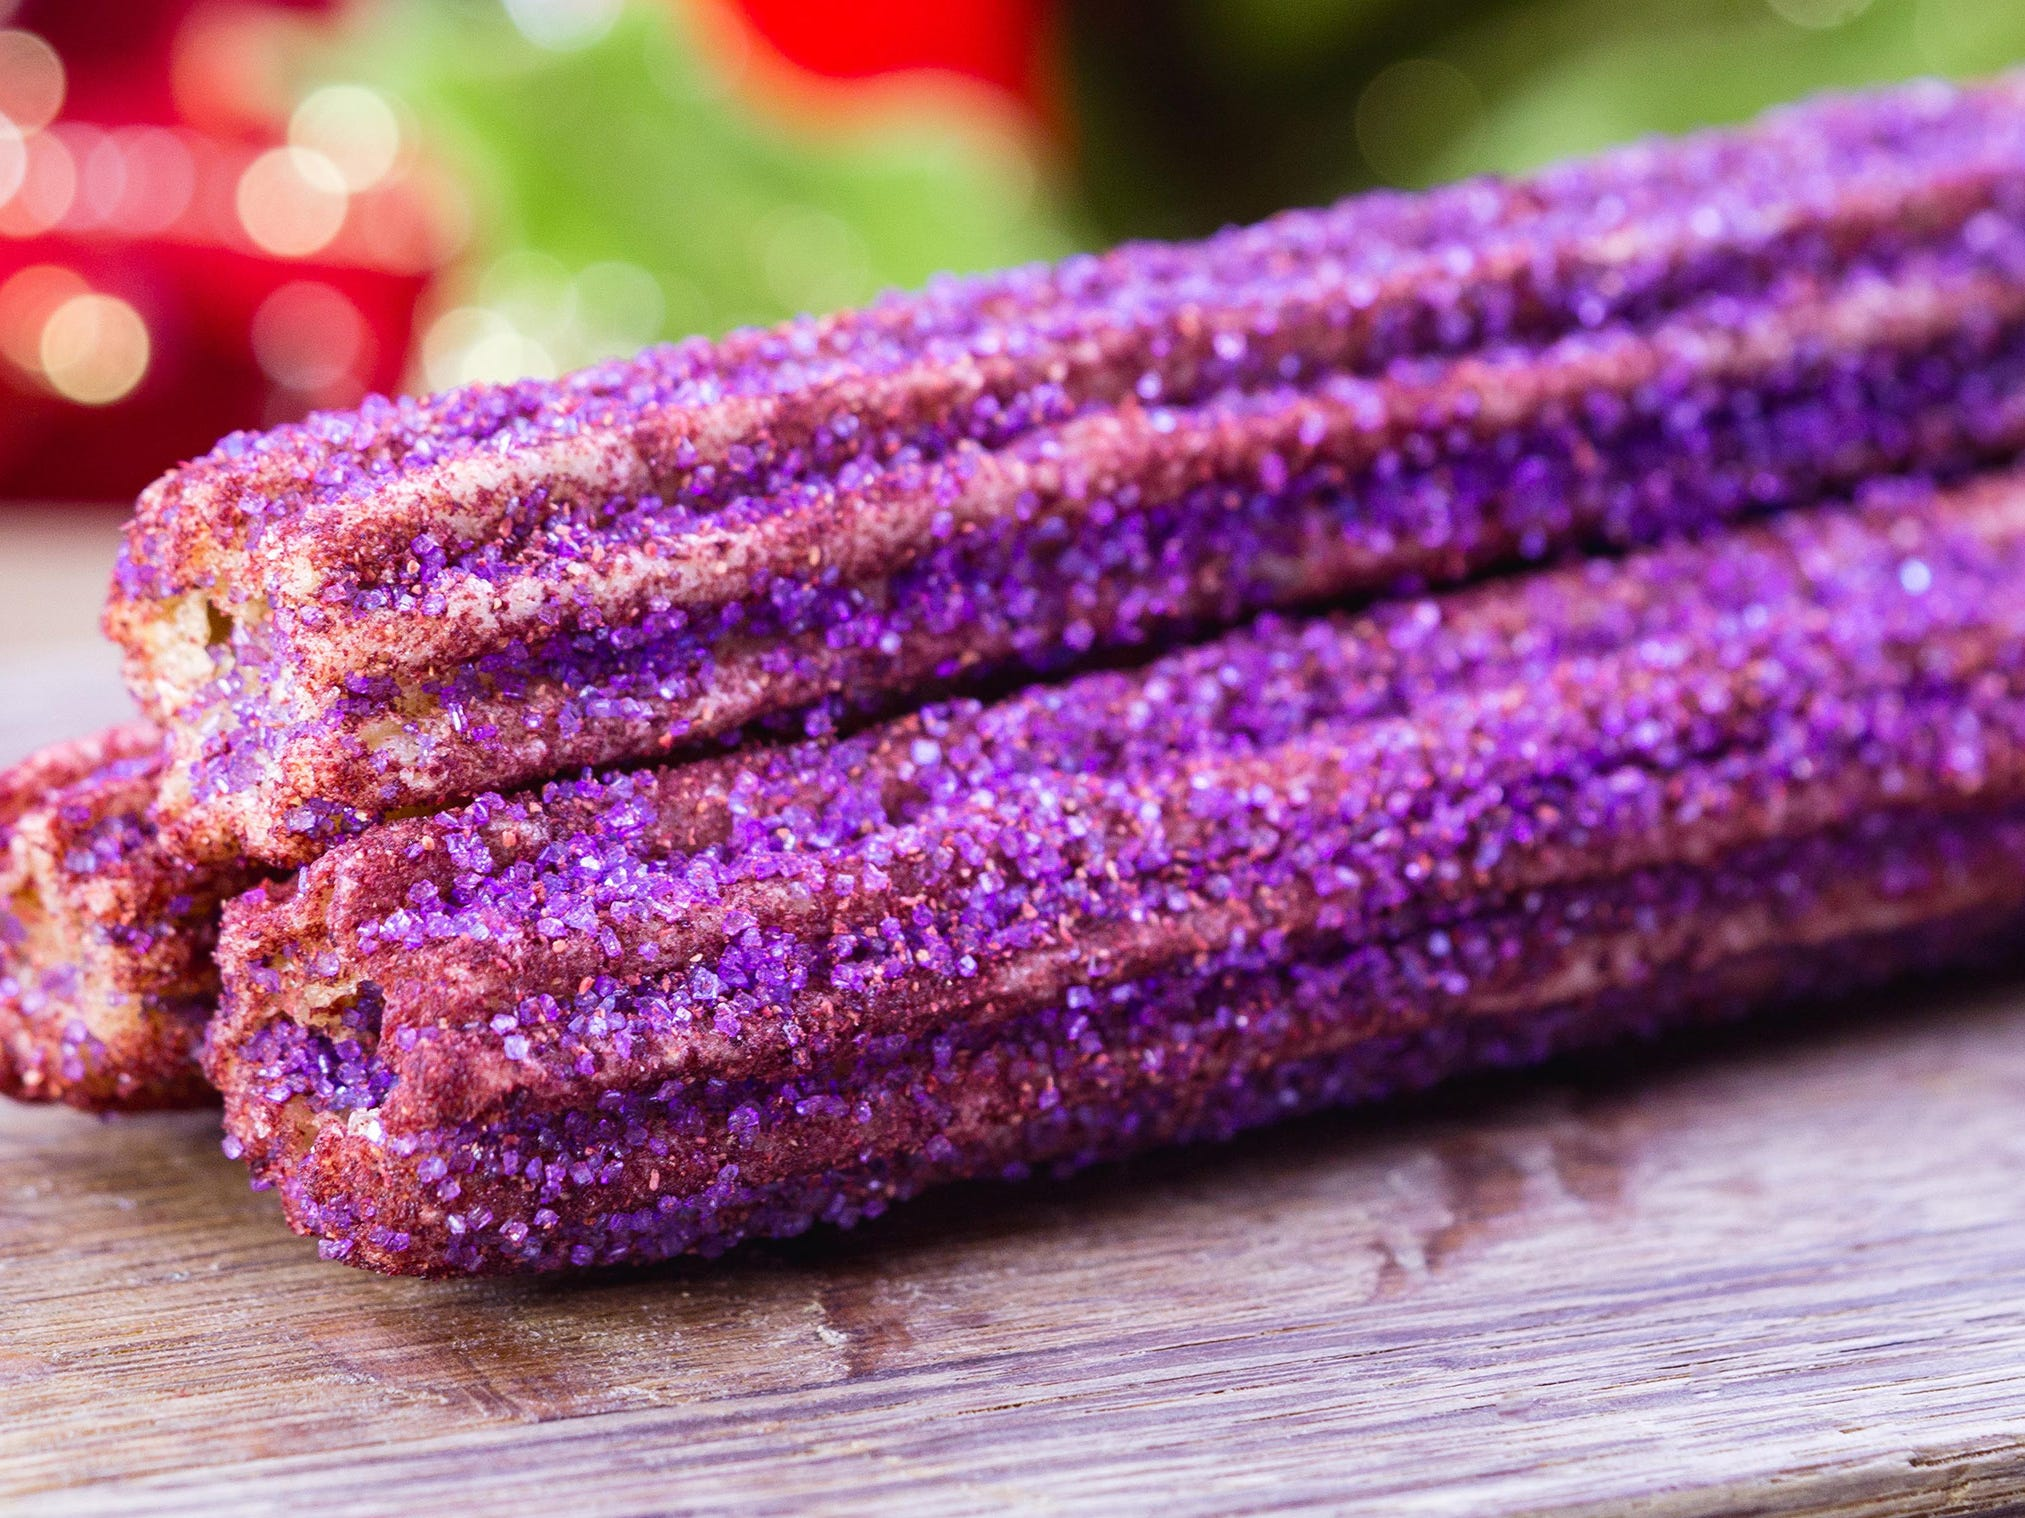 The sugar plum candy churro can be found for a limited time near Haunted Mansion in New Orleans Square at Disneyland park during Holidays at the Disneyland Resort.